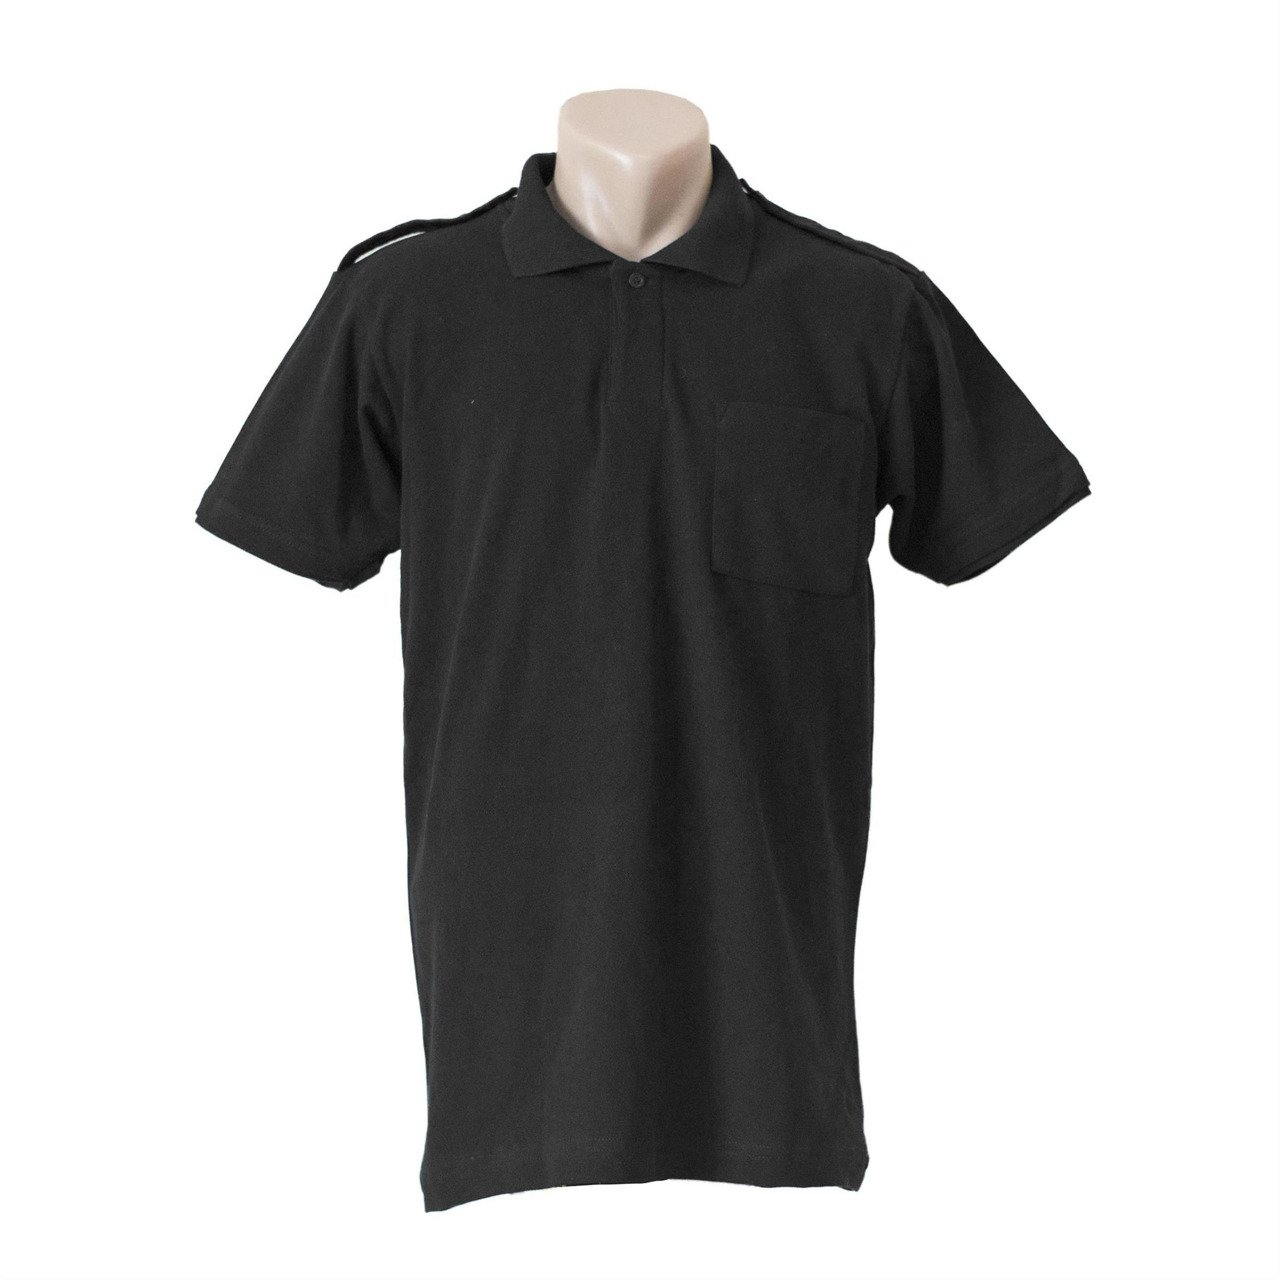 Polo t shirt black with pocket police ems fire for Polo t shirts with pocket online